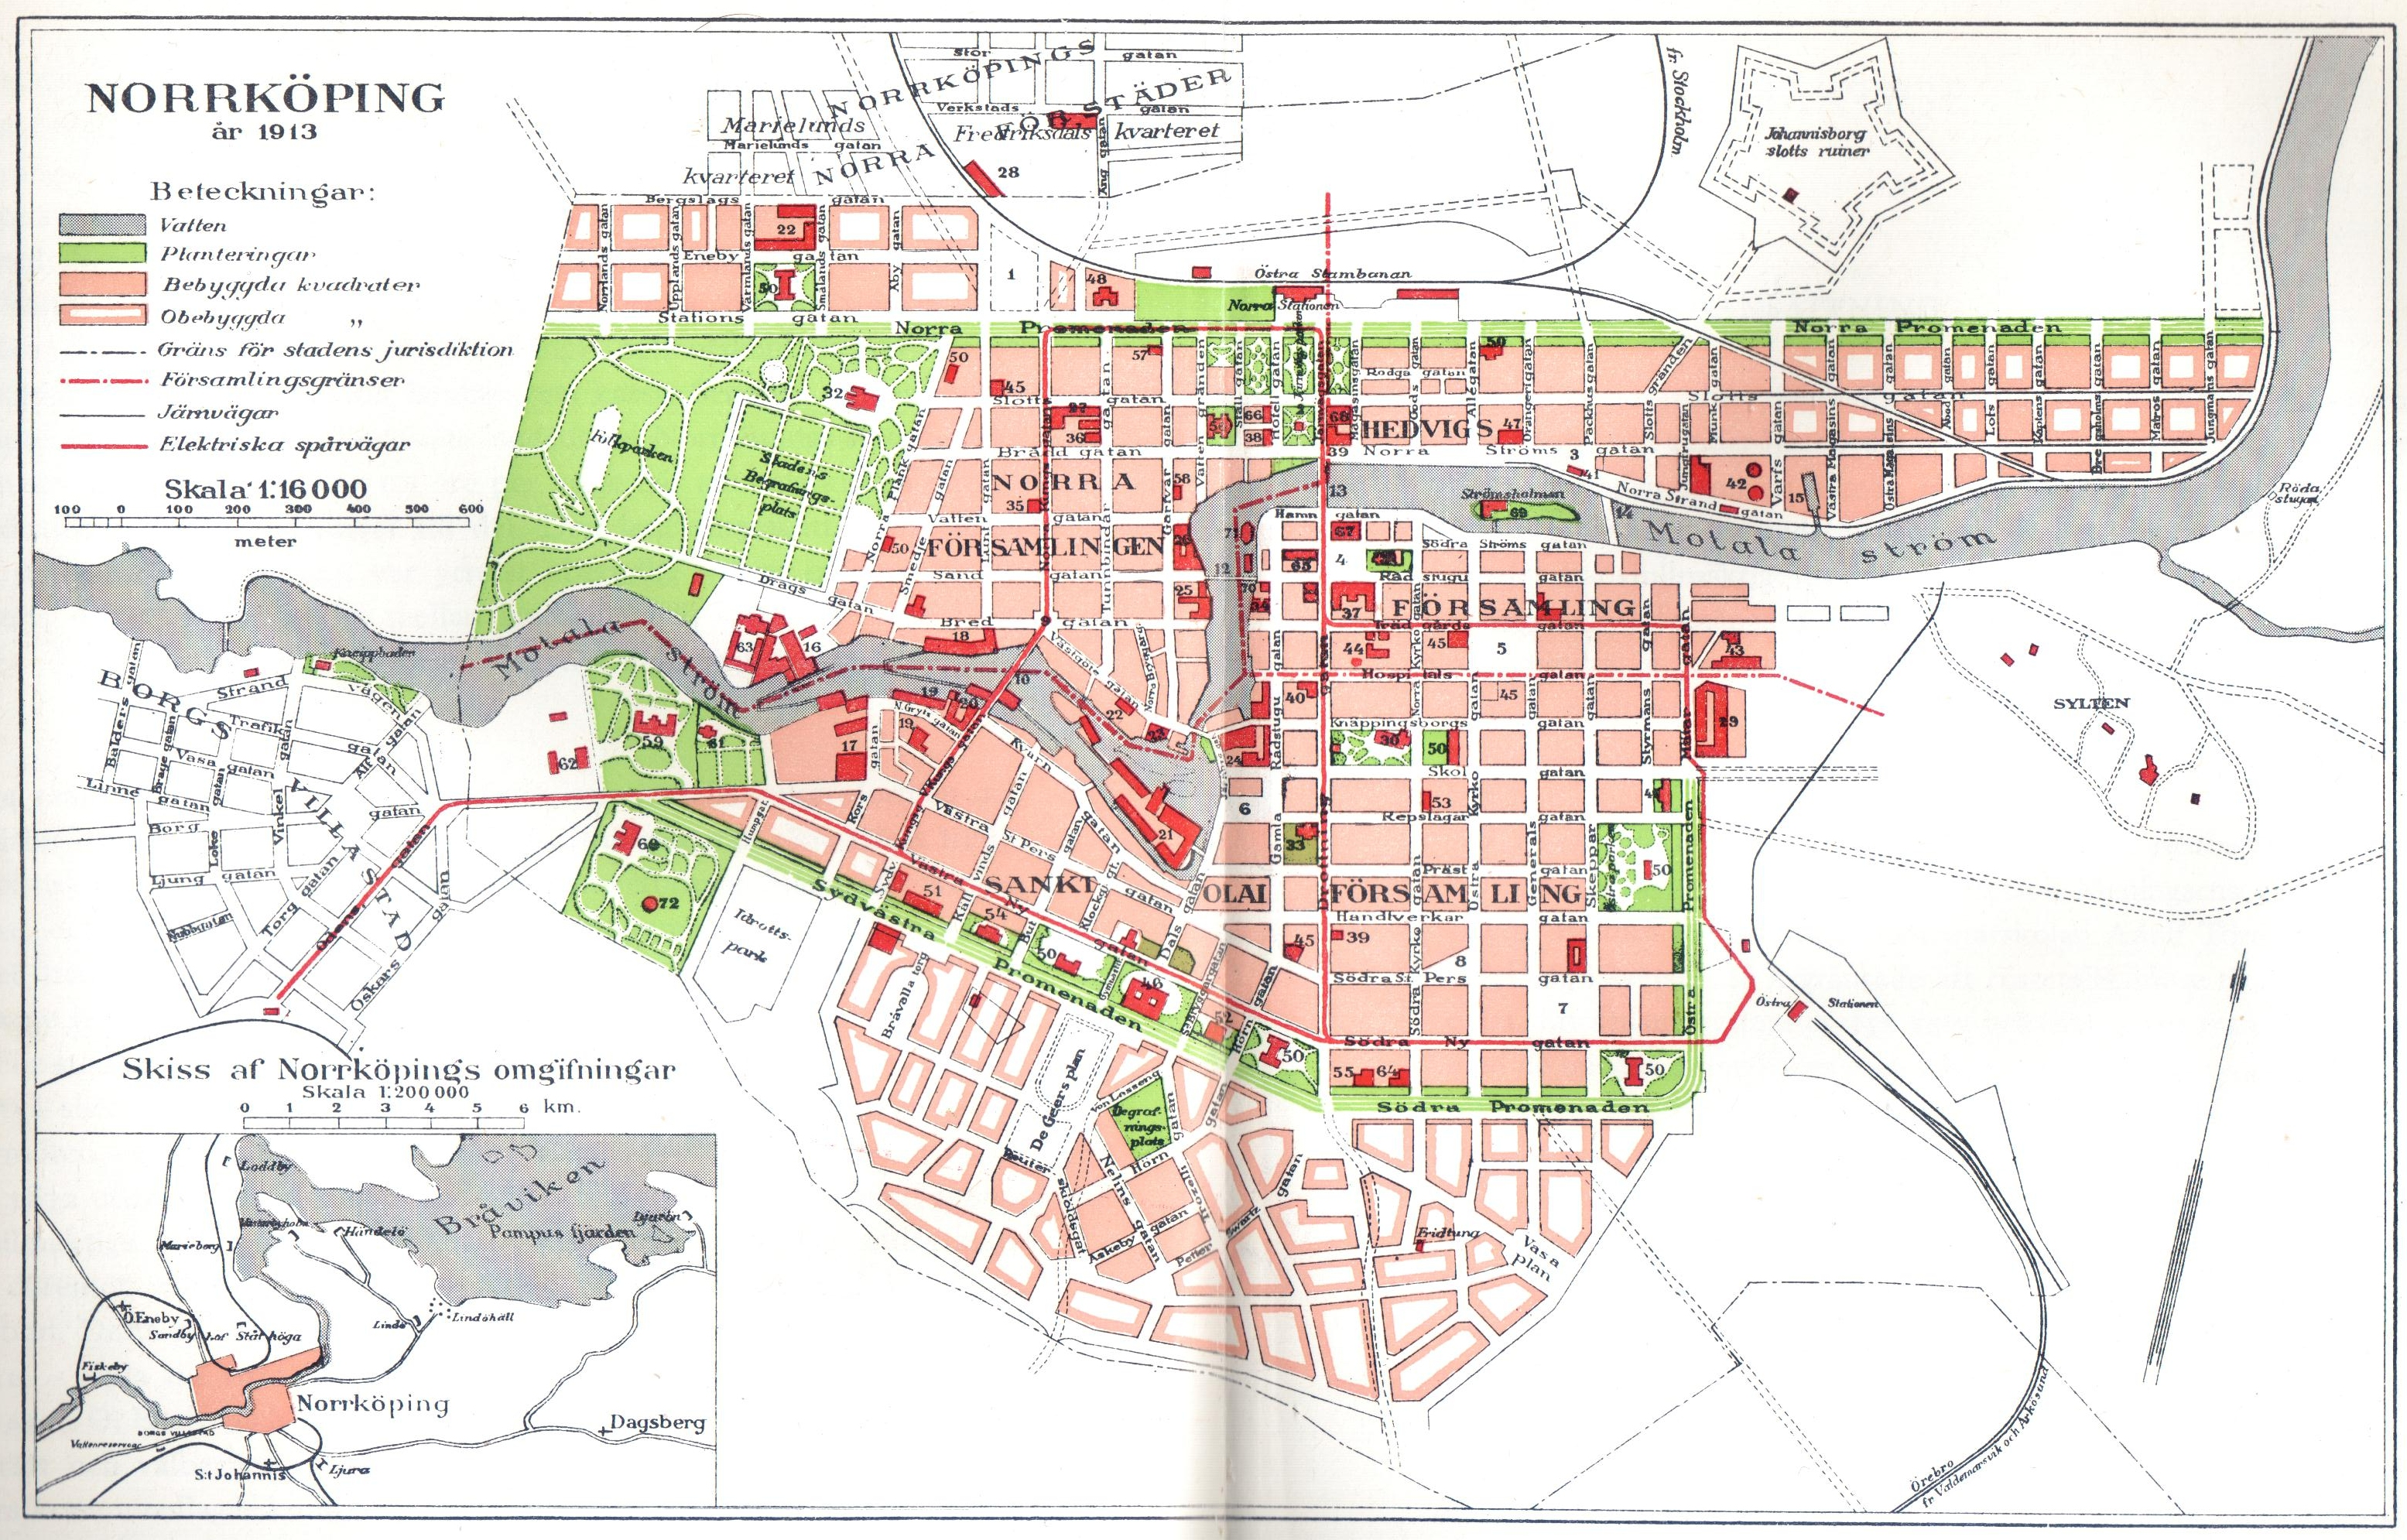 Datei:Map Norrköping 1913.jpg – Wikipedia